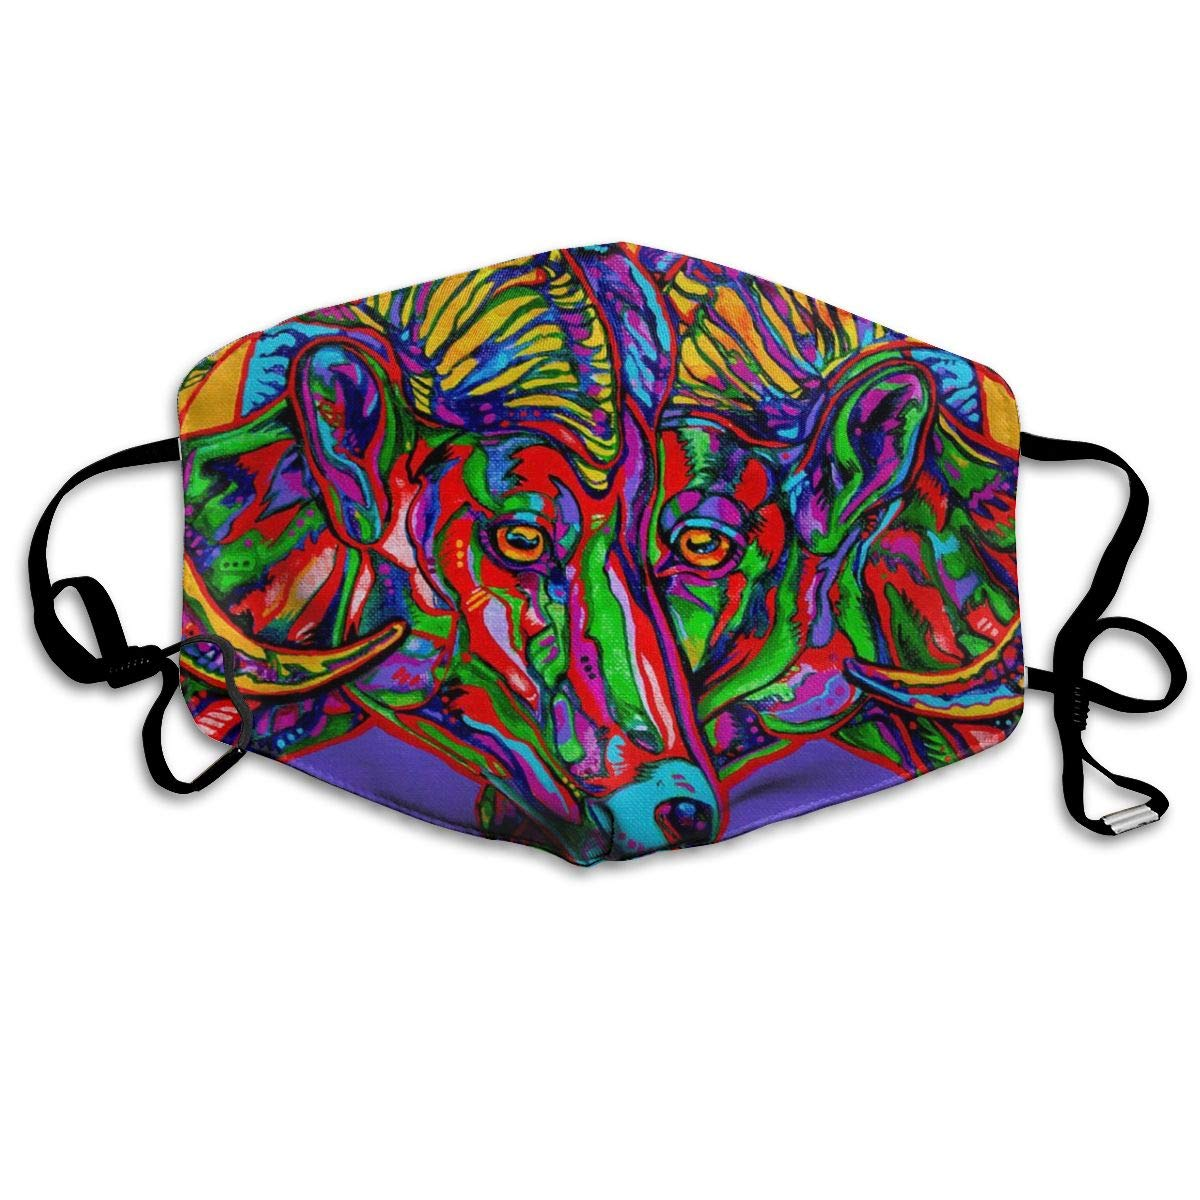 Mouth <font><b>Mask</b></font> Art Animal <font><b>Avatar</b></font> Print <font><b>Masks</b></font> - Breathable Adjustable Windproof Mouth-Muffle, Camping Running for Women and Men image